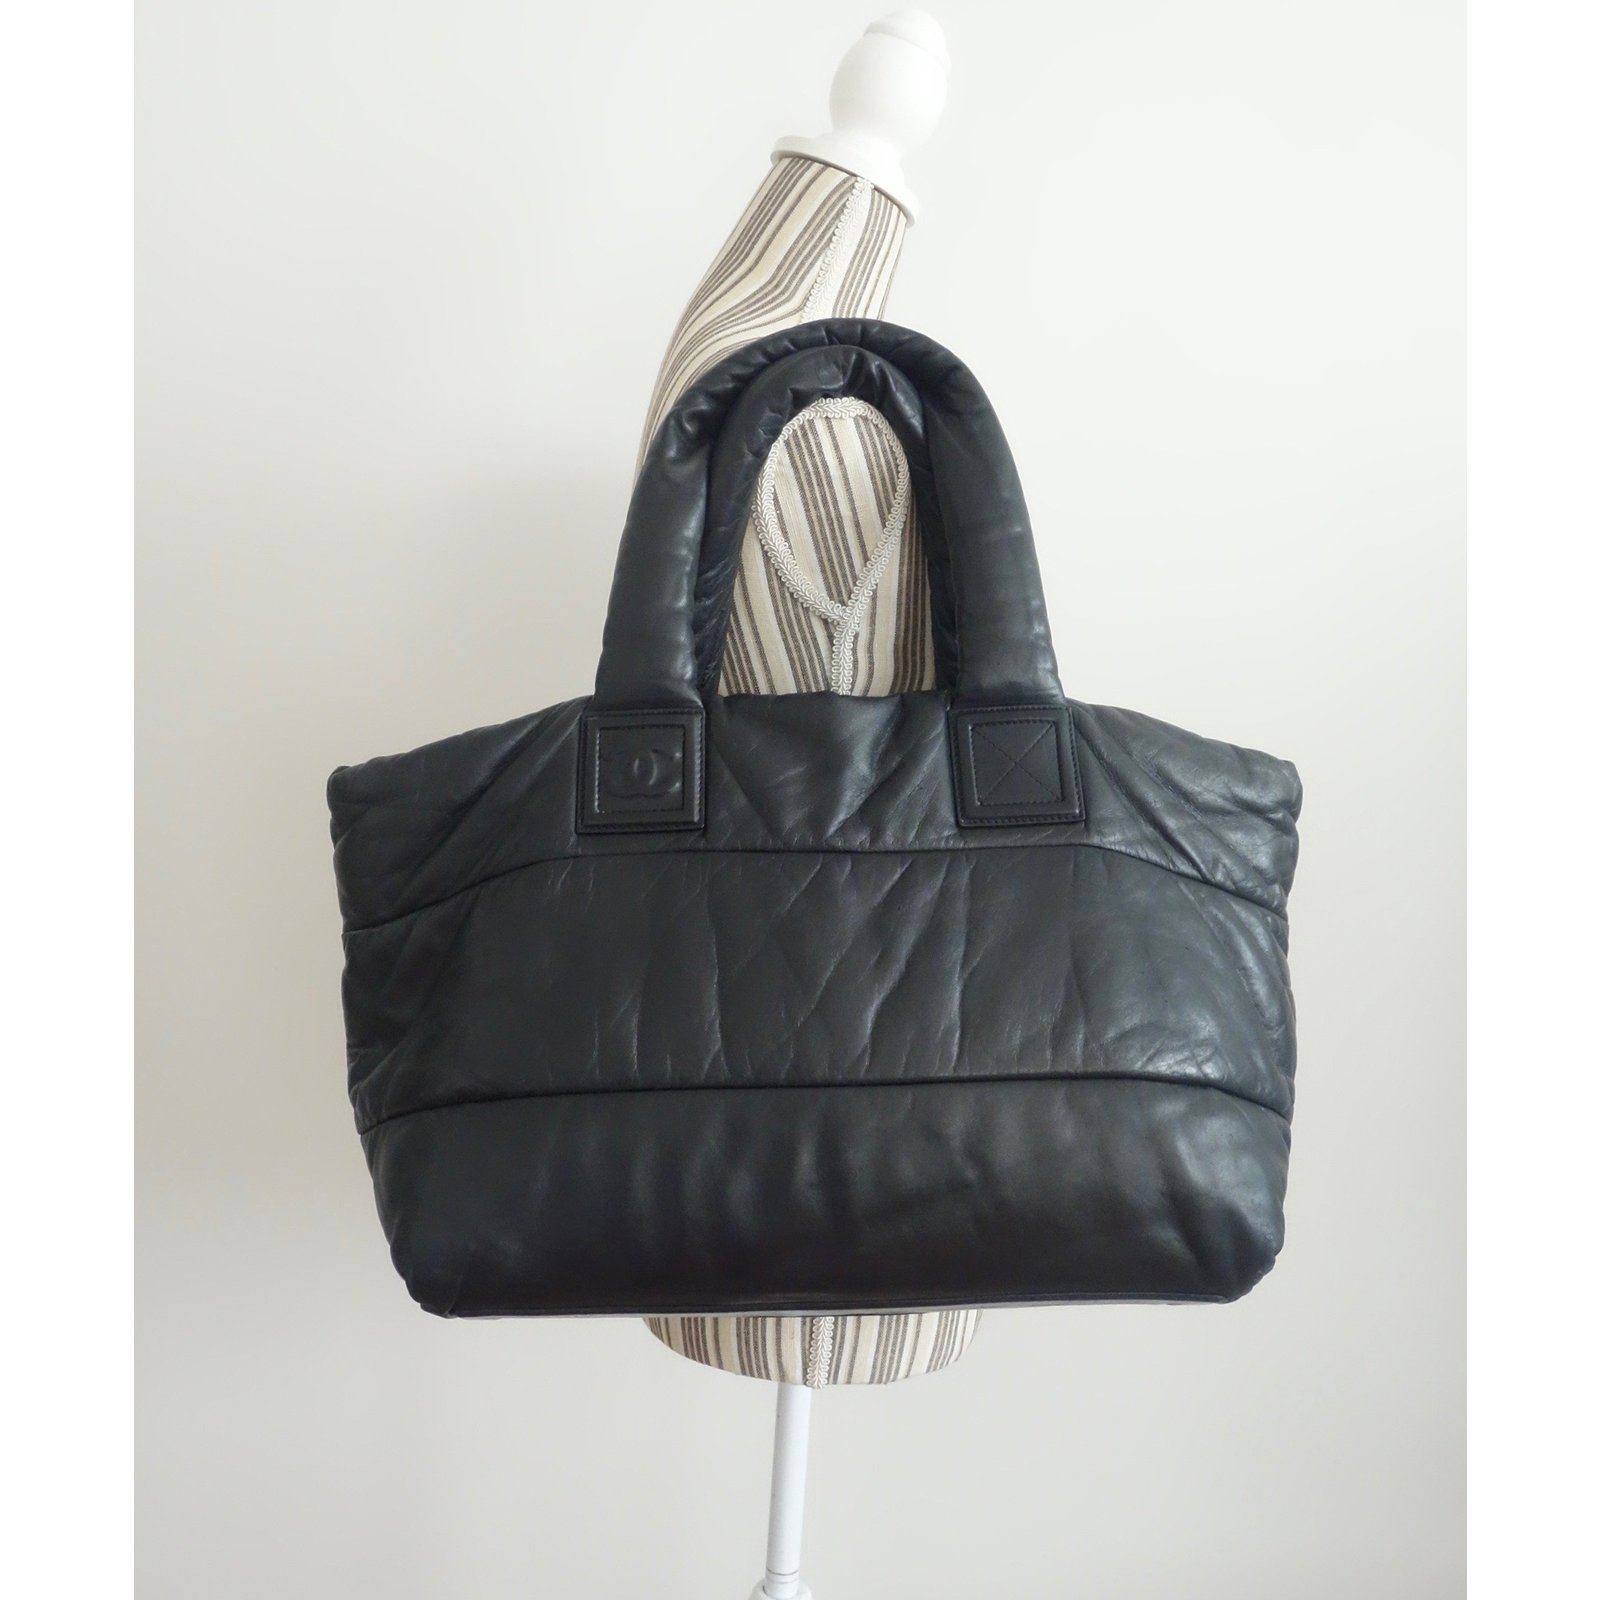 acdd7eccd489 Facebook · Pin This. Chanel Chanel shopping bag Cocoon - large model  Reversible! Handbags Leather Black ...